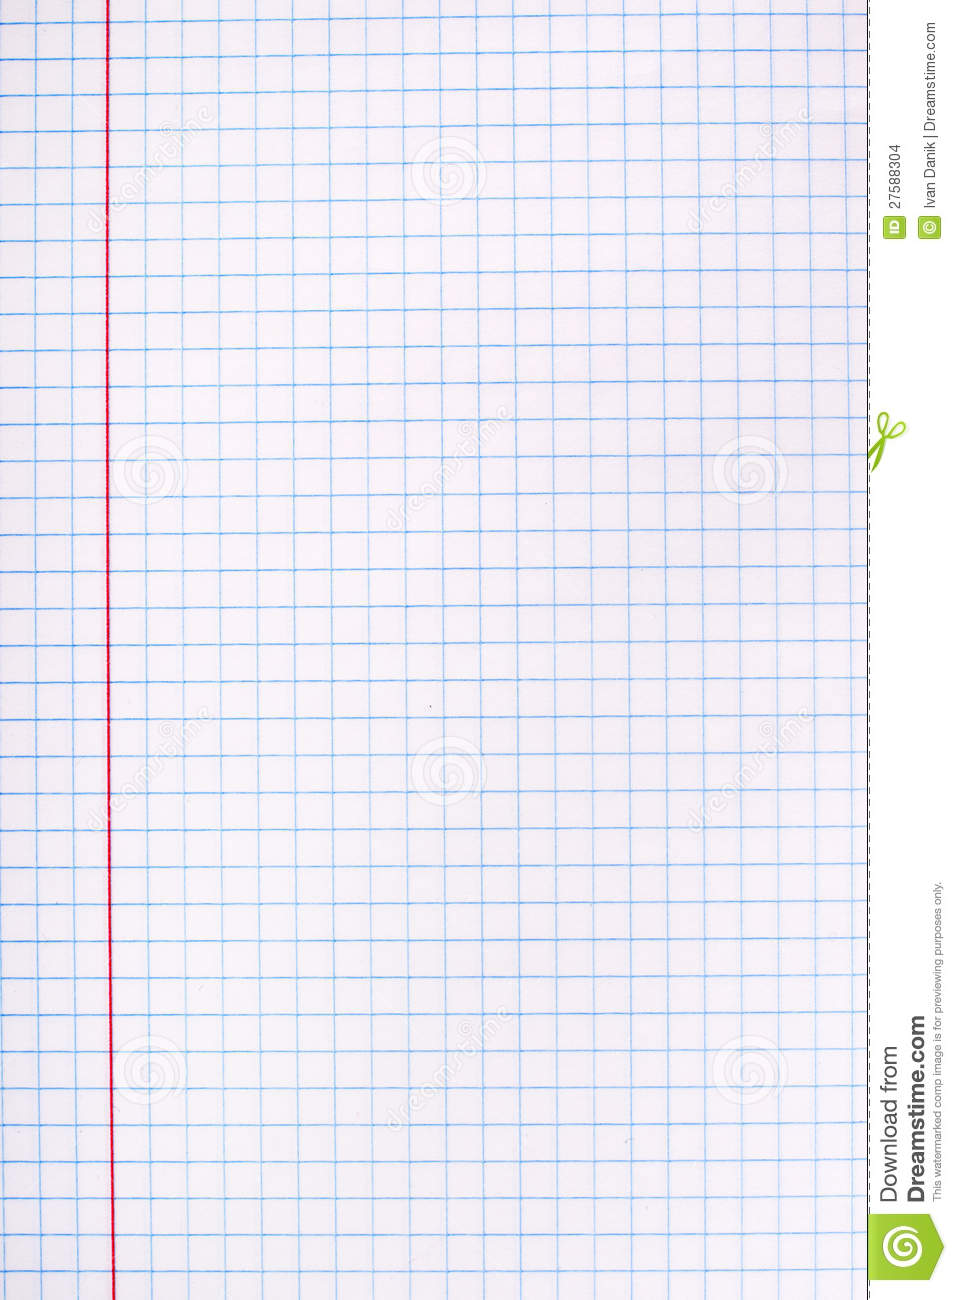 White squared paper sheet stock photo. Image of line